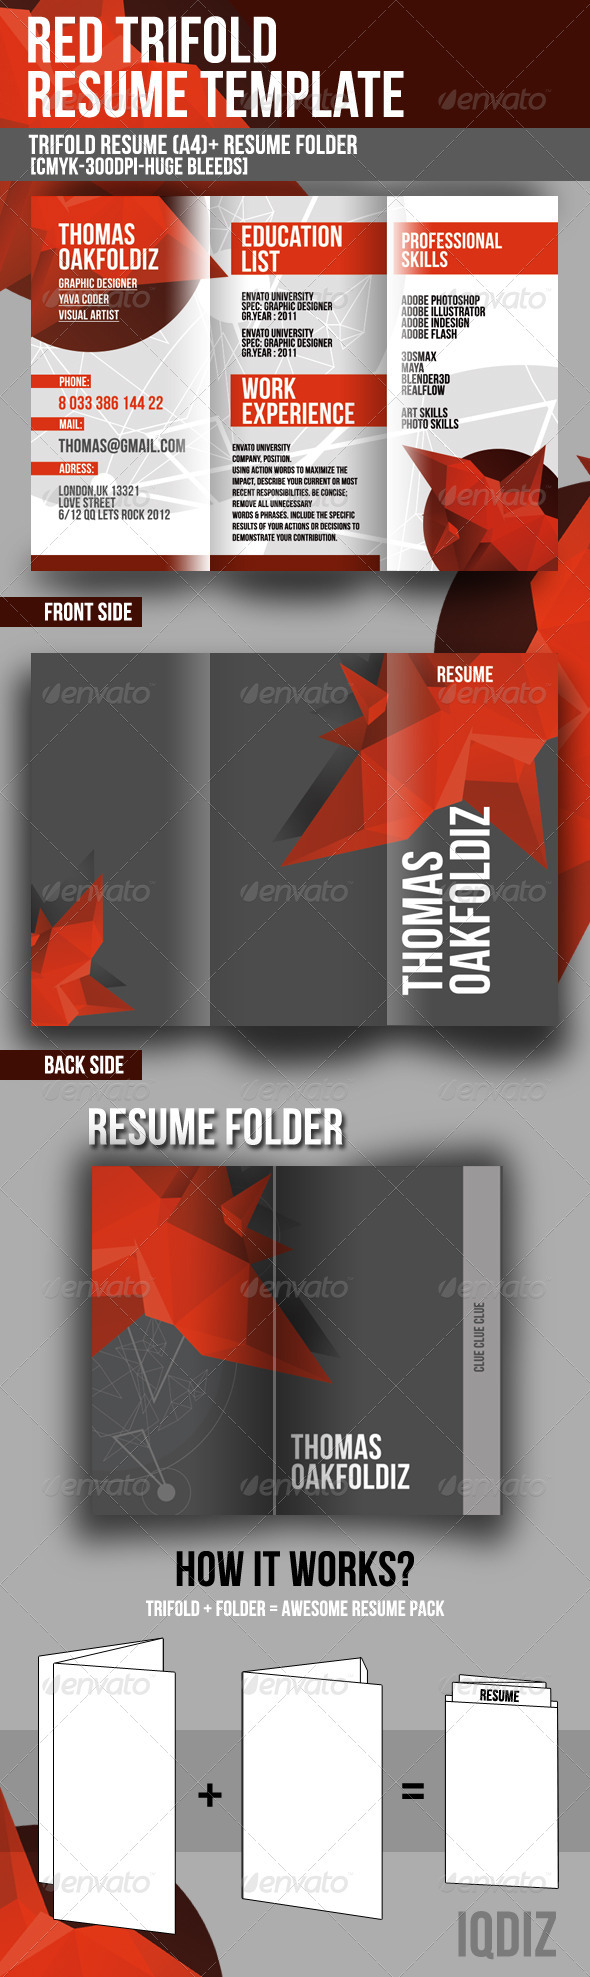 Red Trifold Resume Template By Iqdiz  Graphicriver